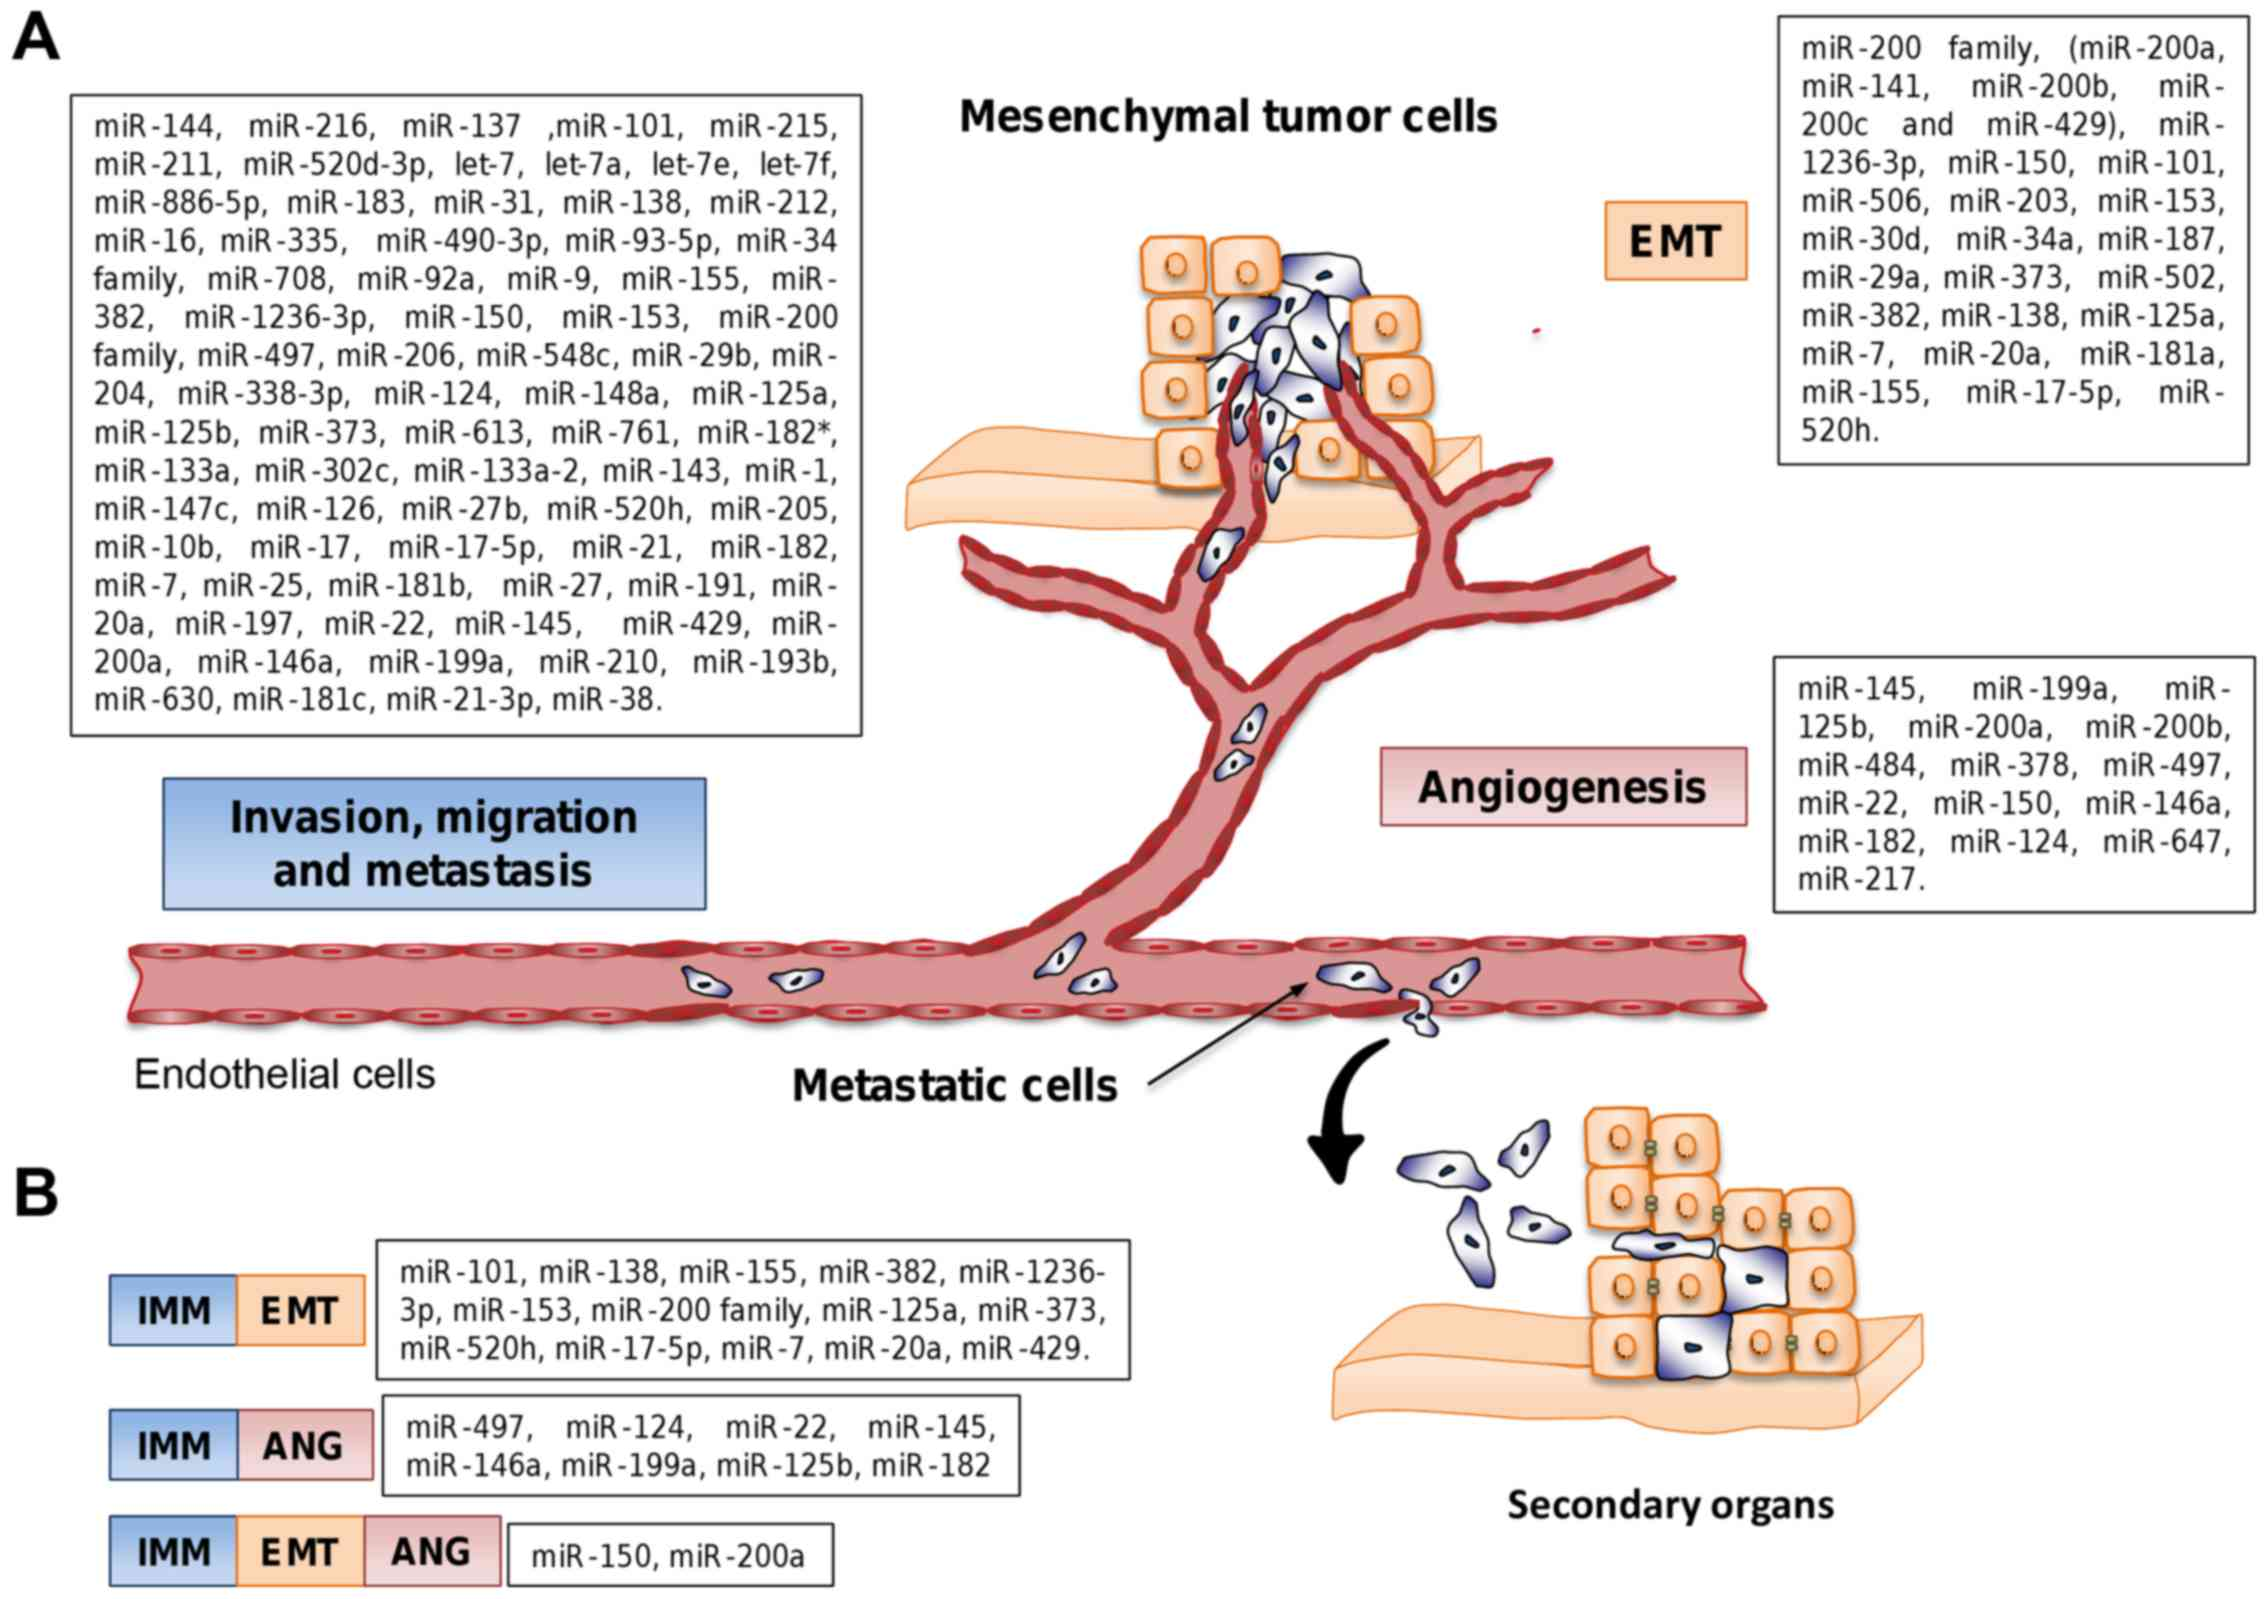 MicroRNAs driving invasion and metastasis in ovarian cancer